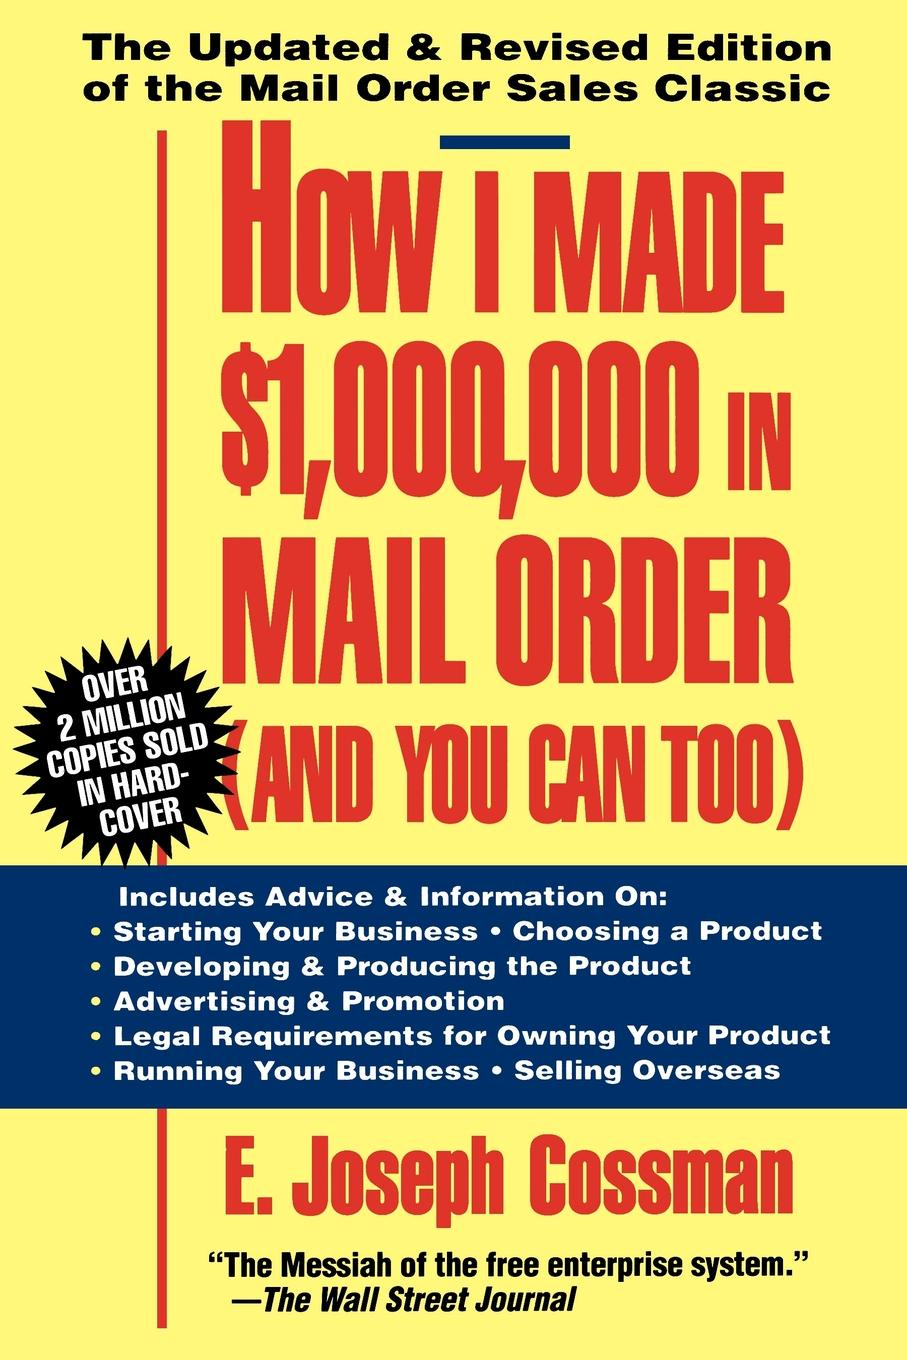 E. Joseph Cossman How I Made .1,000,000 in Mail Order-And You Can Too! can you say it too twit twoo